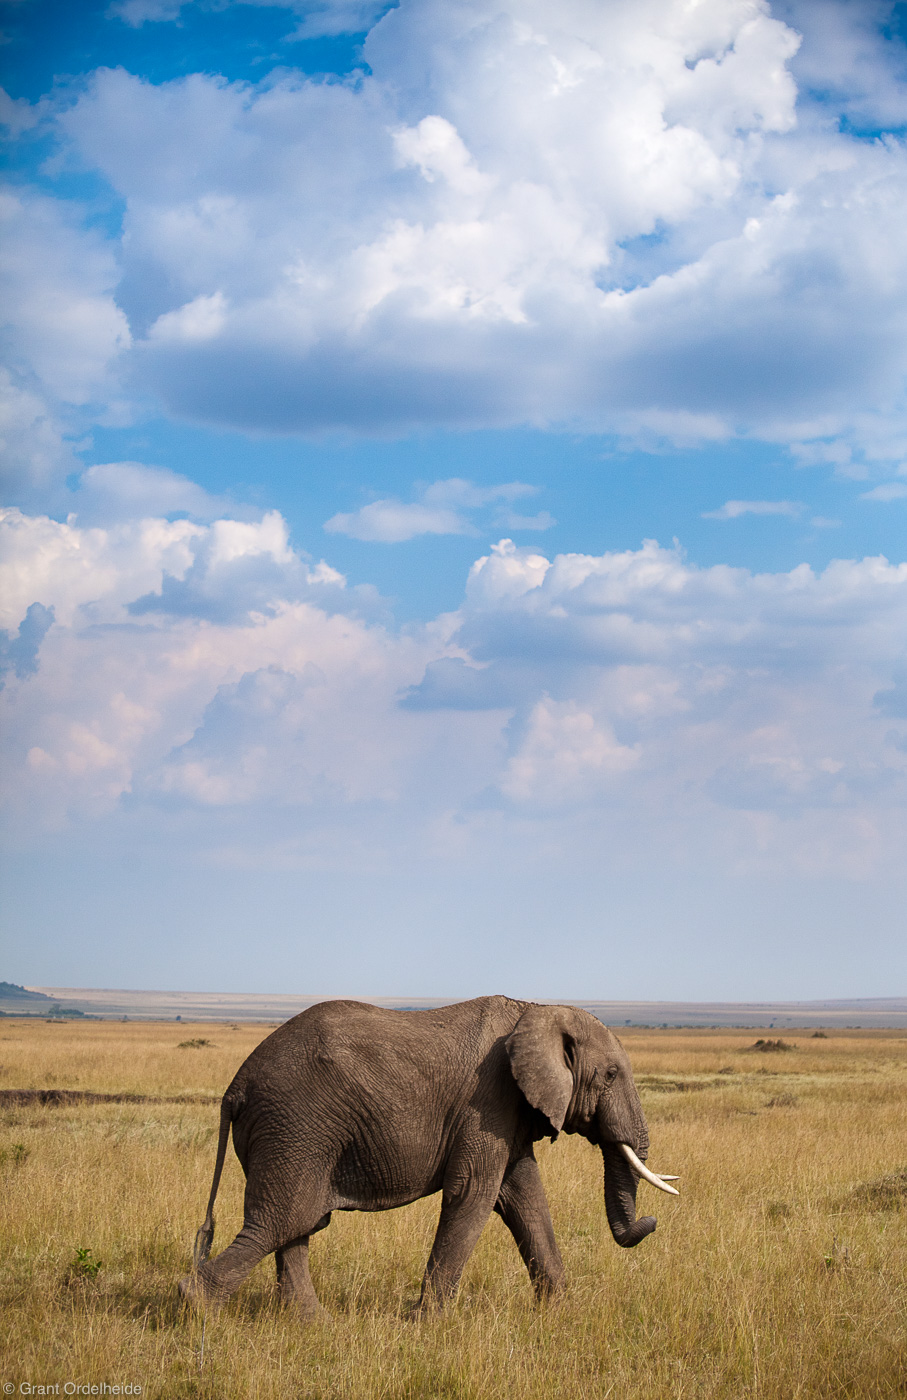 elephant, masai, mara, kenya, africa, lone, walks, stride, grasslands, beautiful sky, photo